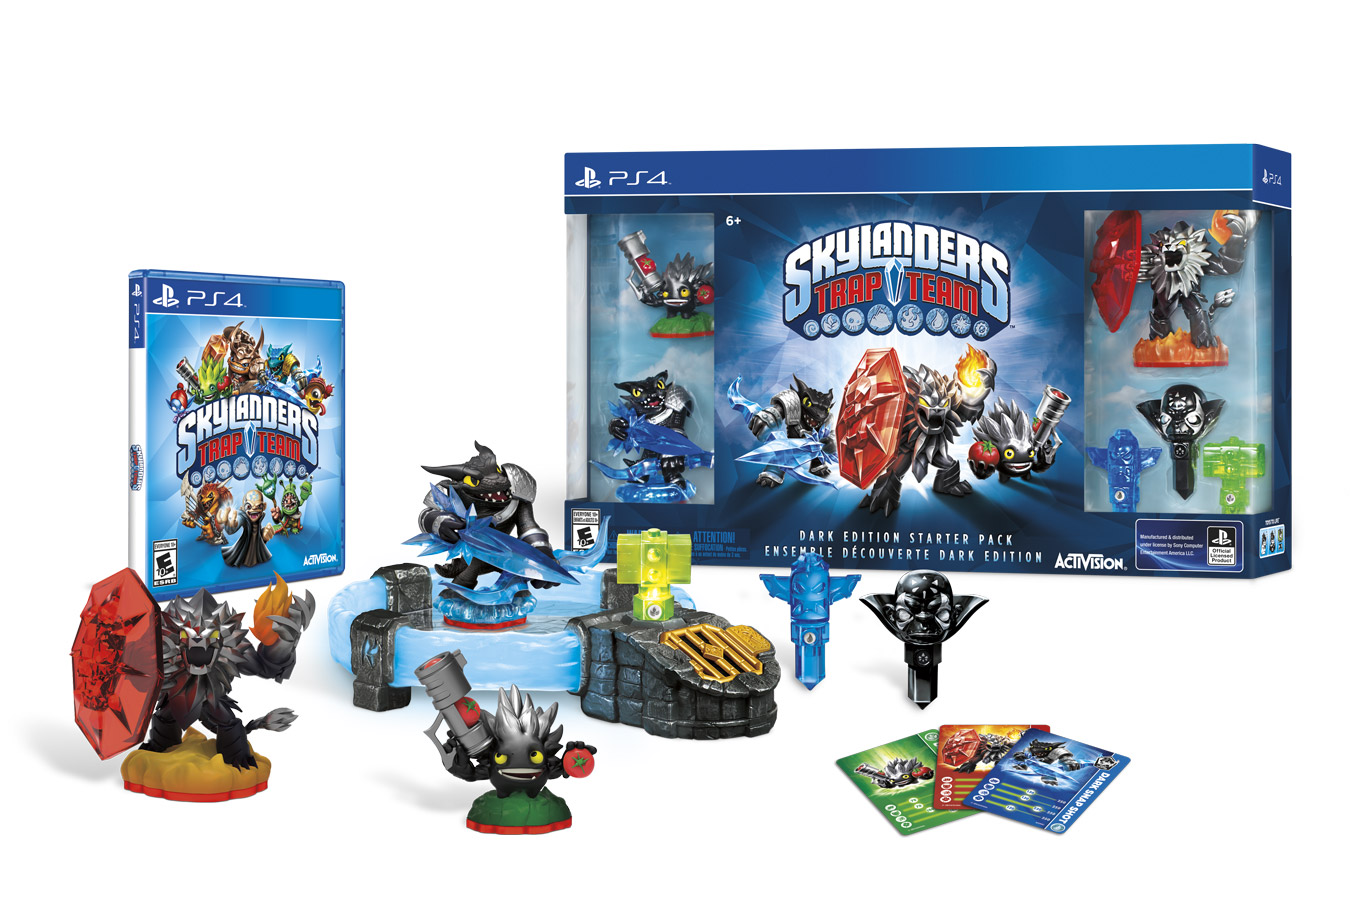 PS4: Skylanders Trap Team - Dark Edition Starter